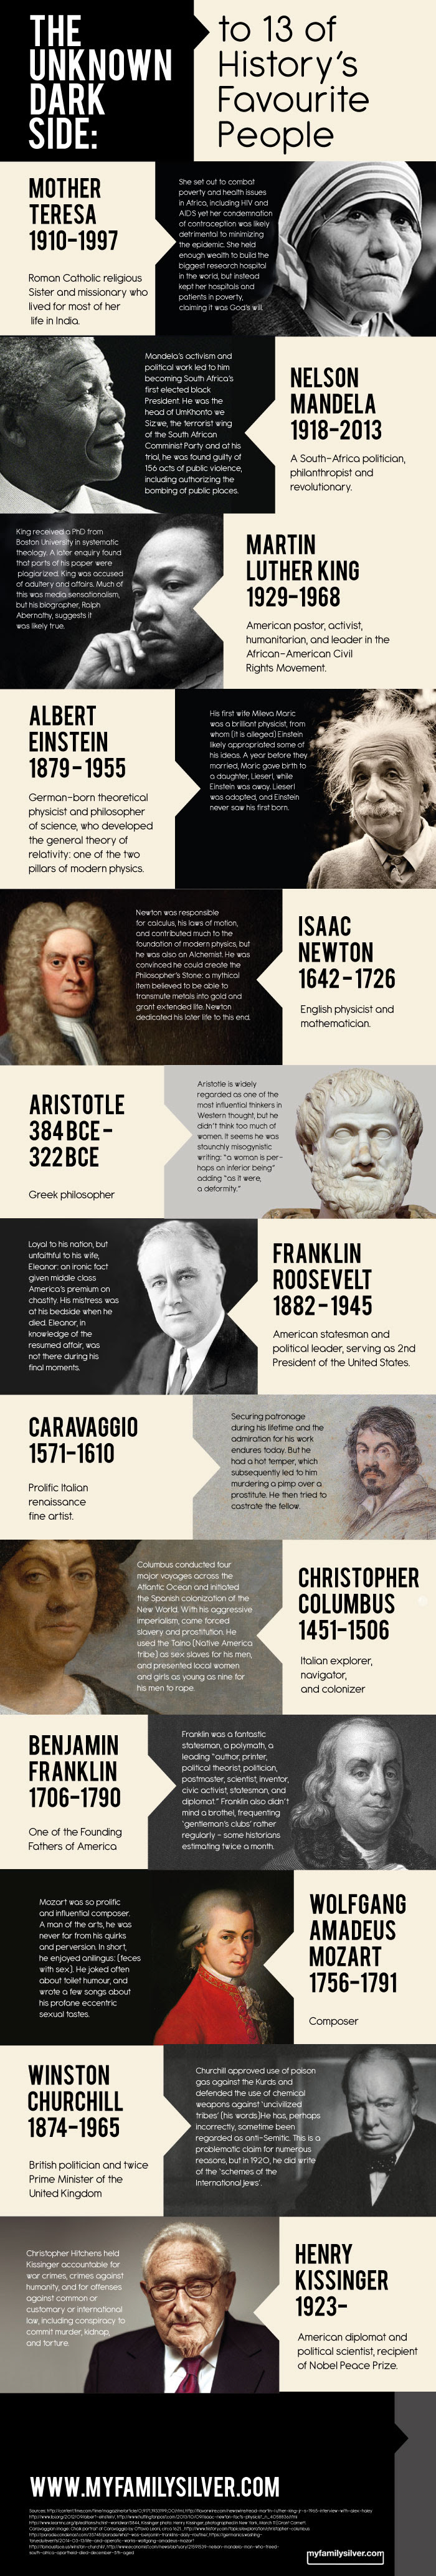 Infographic: The Unknown Dark Side to 13 of History's Favourite People